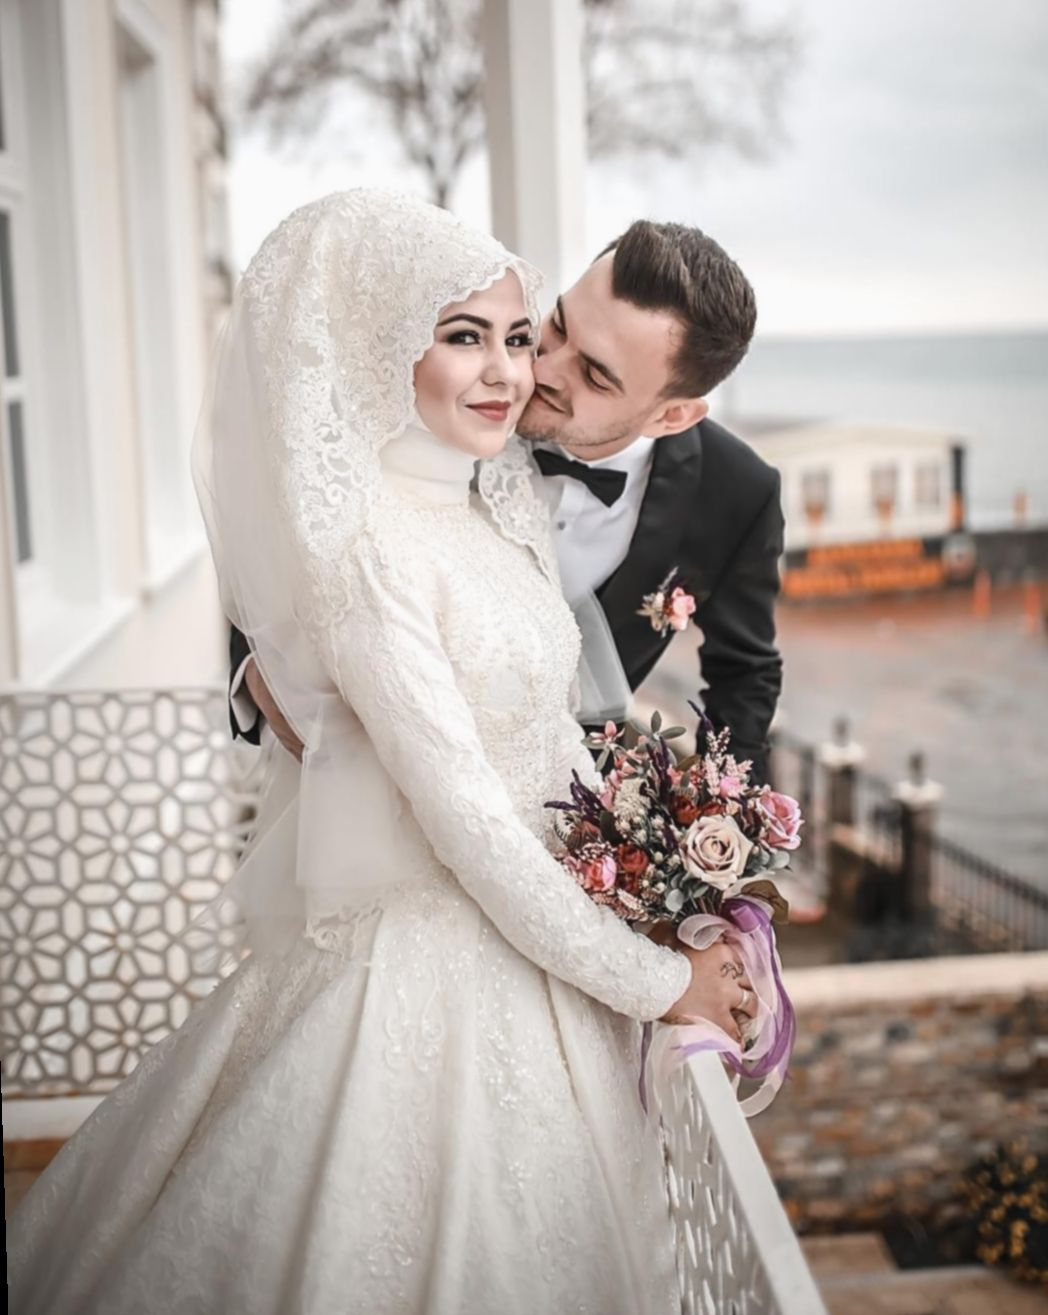 Couple Wedding Outfits Grooms #Couple #Coupledrawings # concernant Hijab Mariage Invité